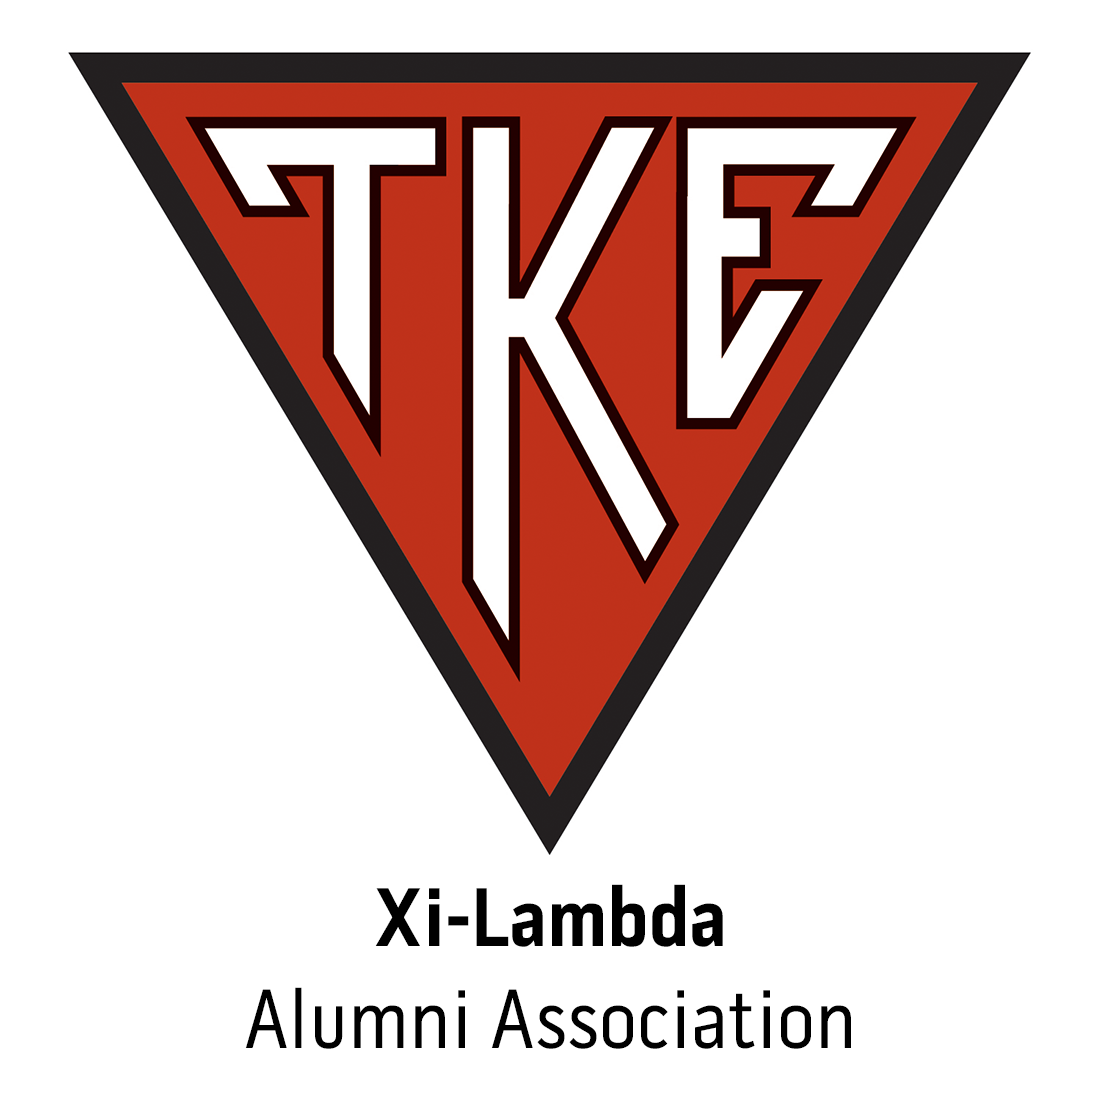 Xi-Lambda Alumni Association at University of Georgia